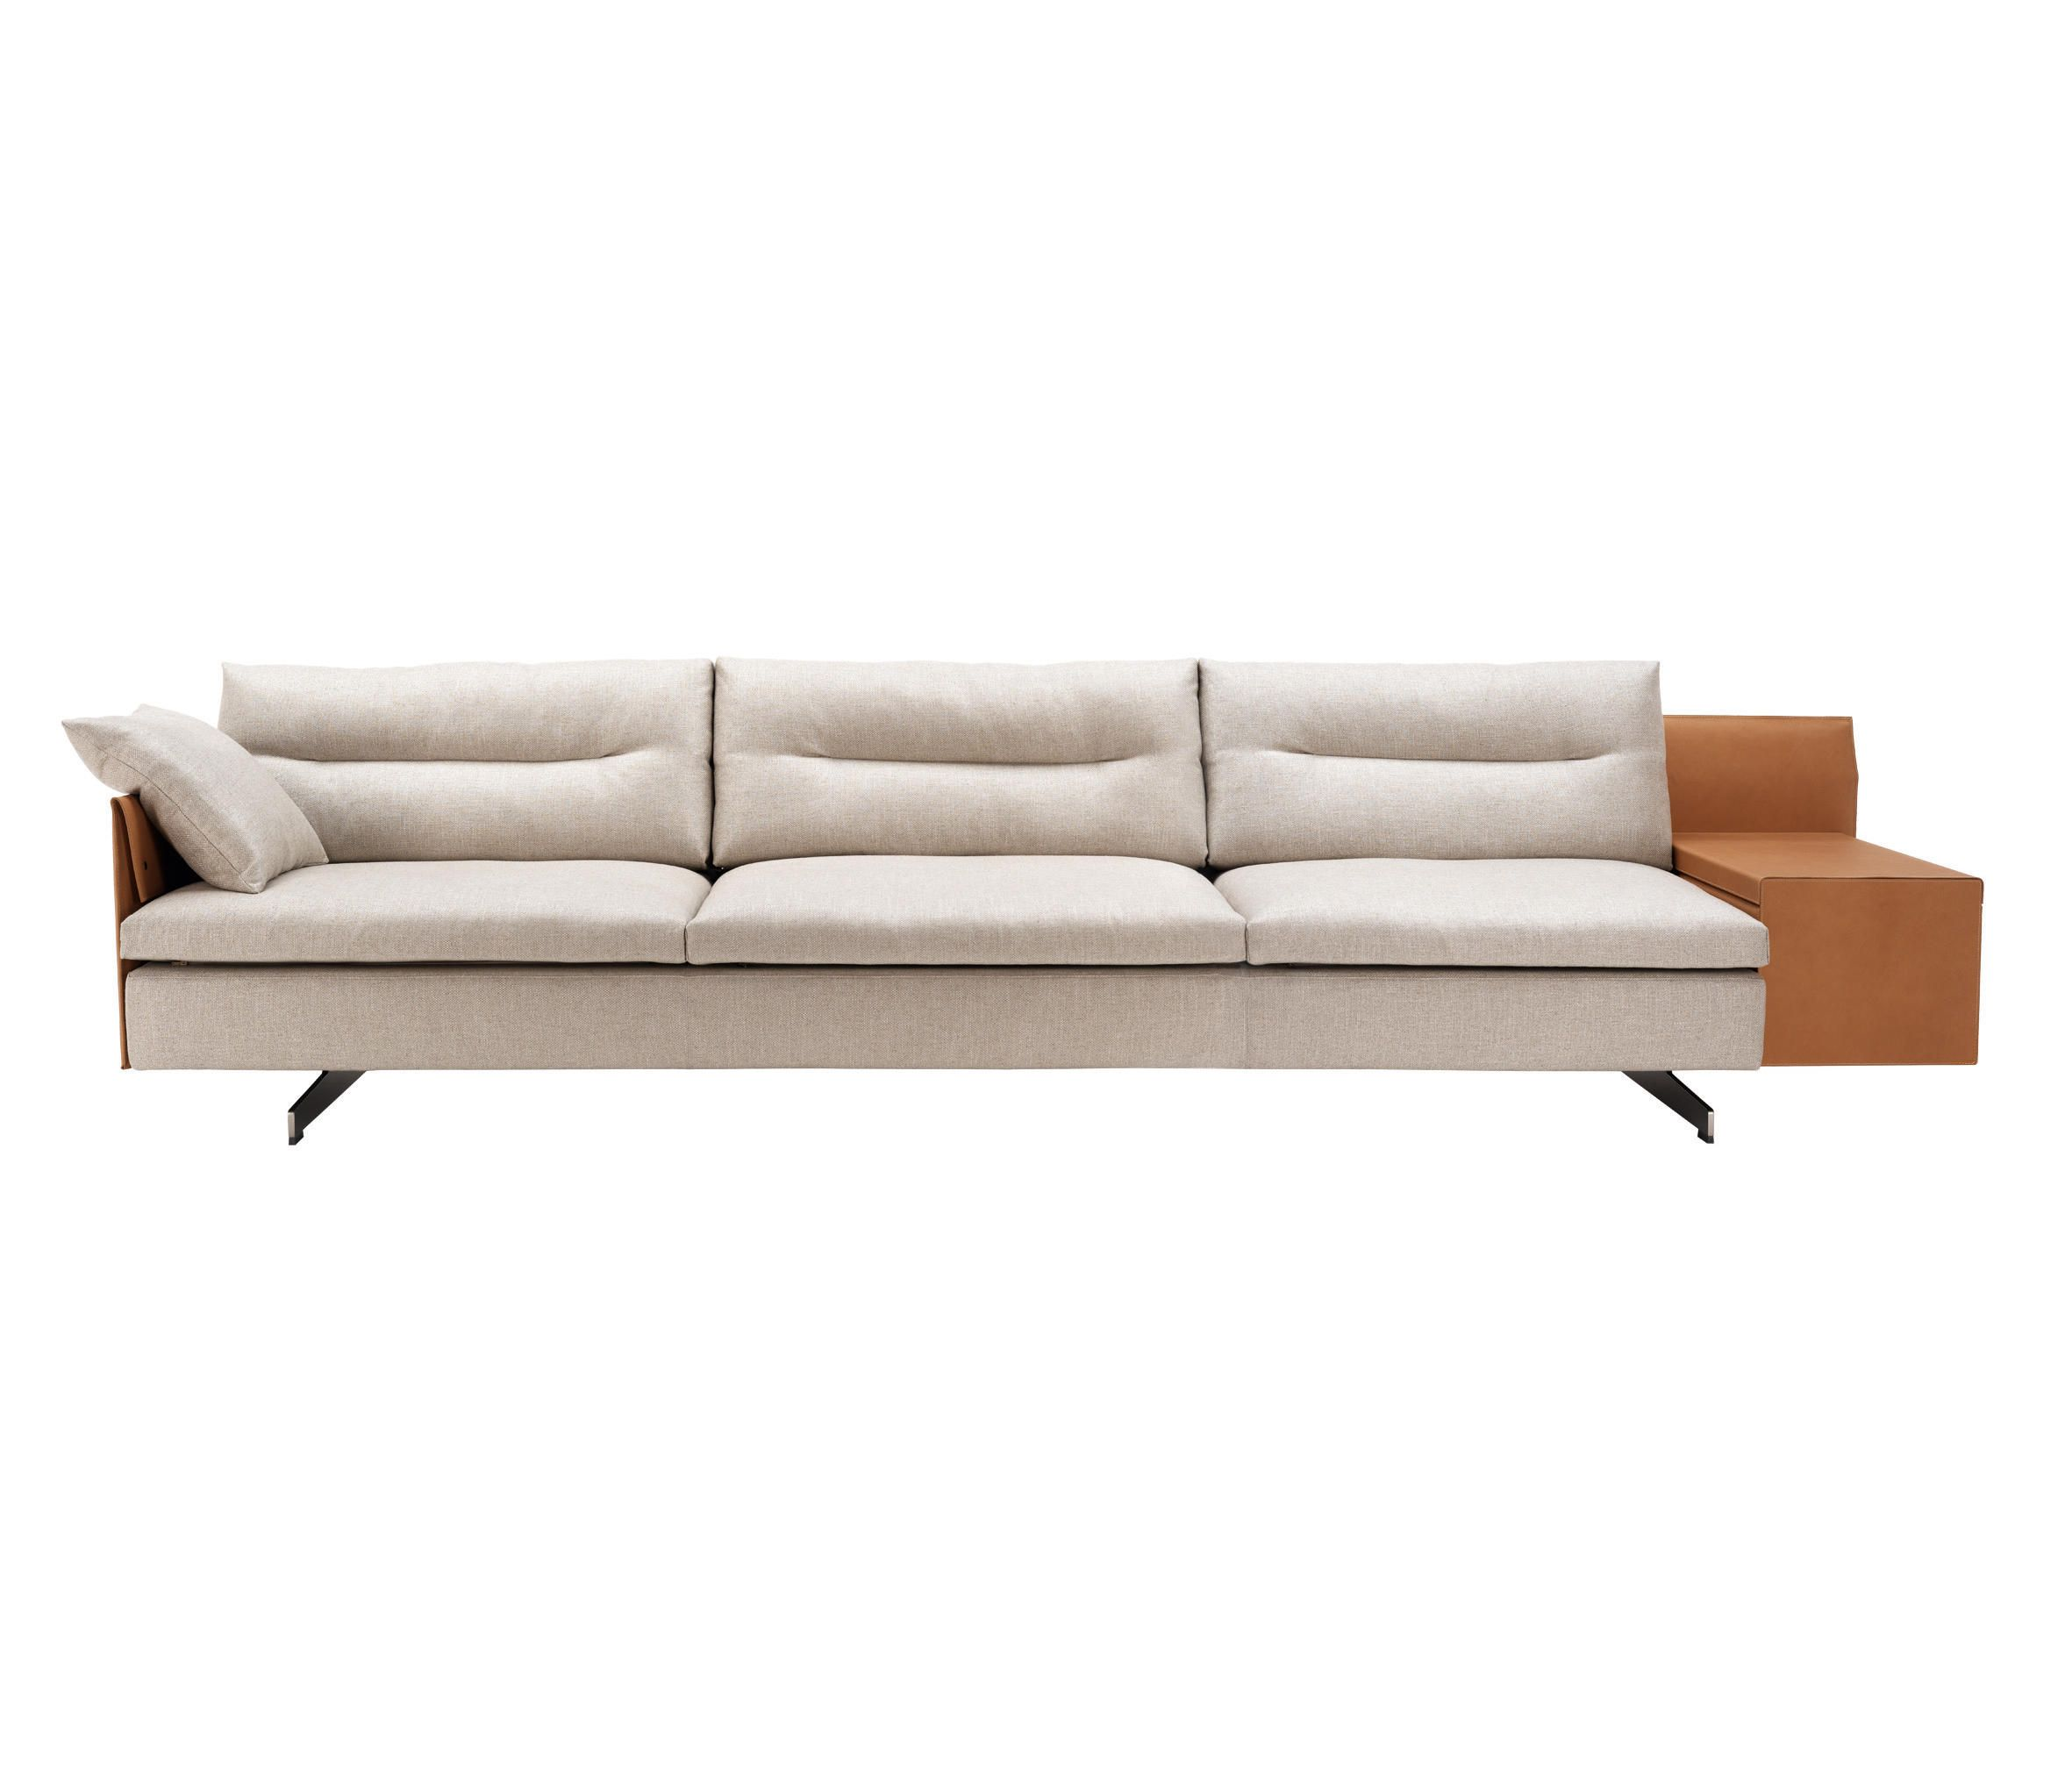 GRANTORINO Designer Sofas from Poltrona Frau ✓ all information